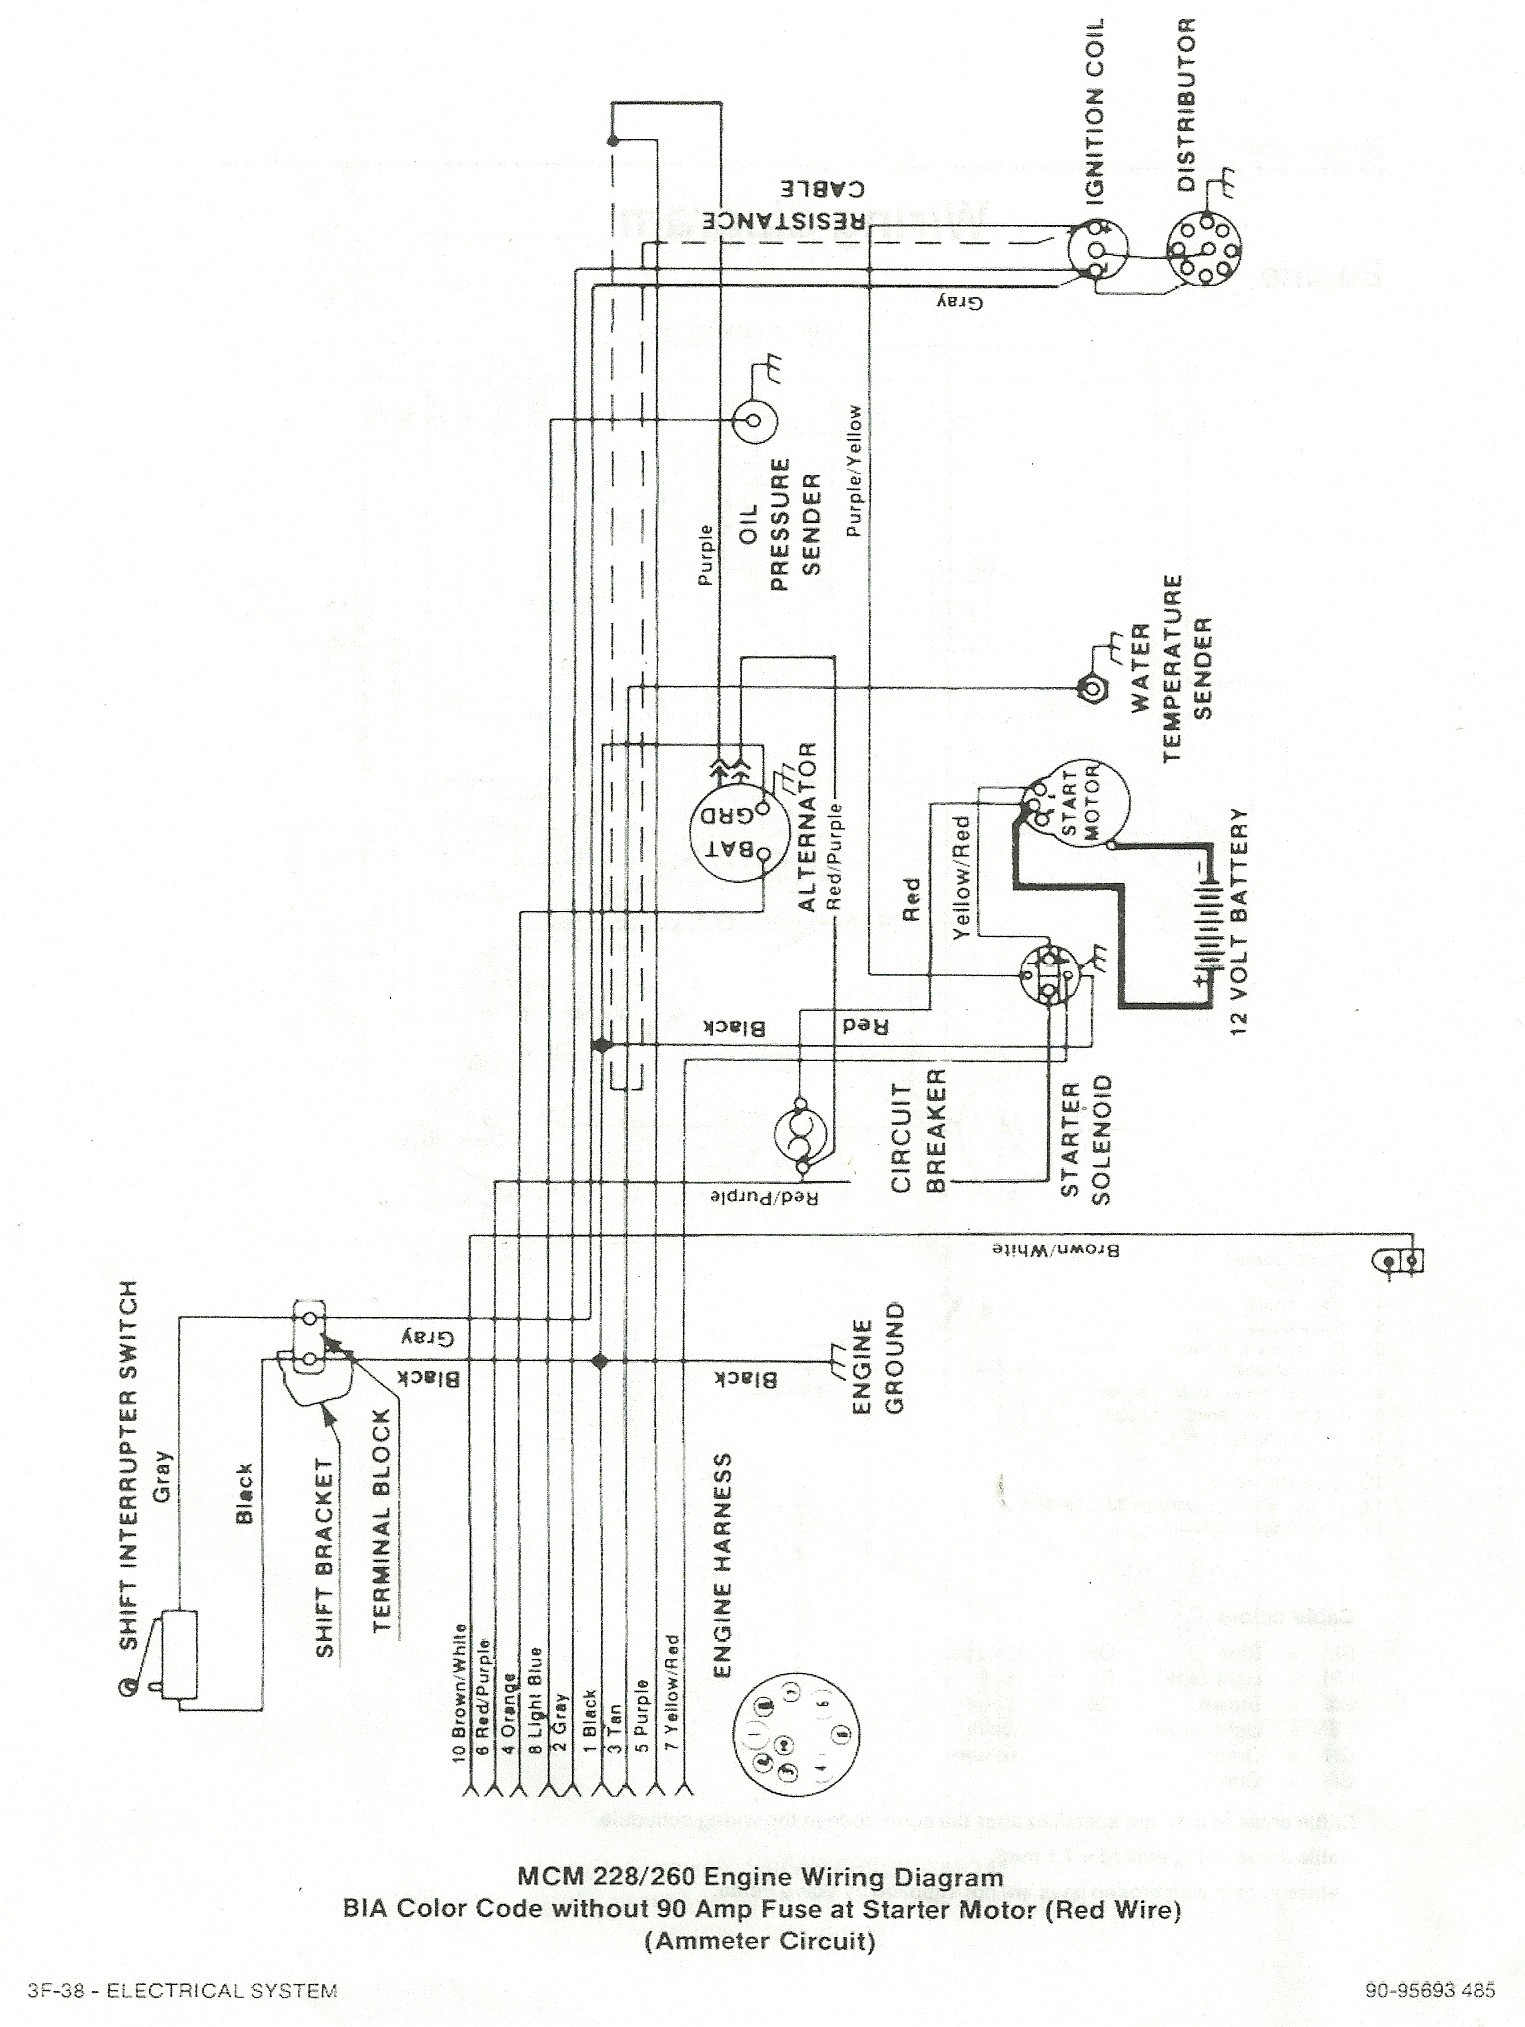 ... 165 mercruiser shift interrupt switch wiring diagram explained rh  dmdelectro co Mercruiser 4 3 Engine Diagram